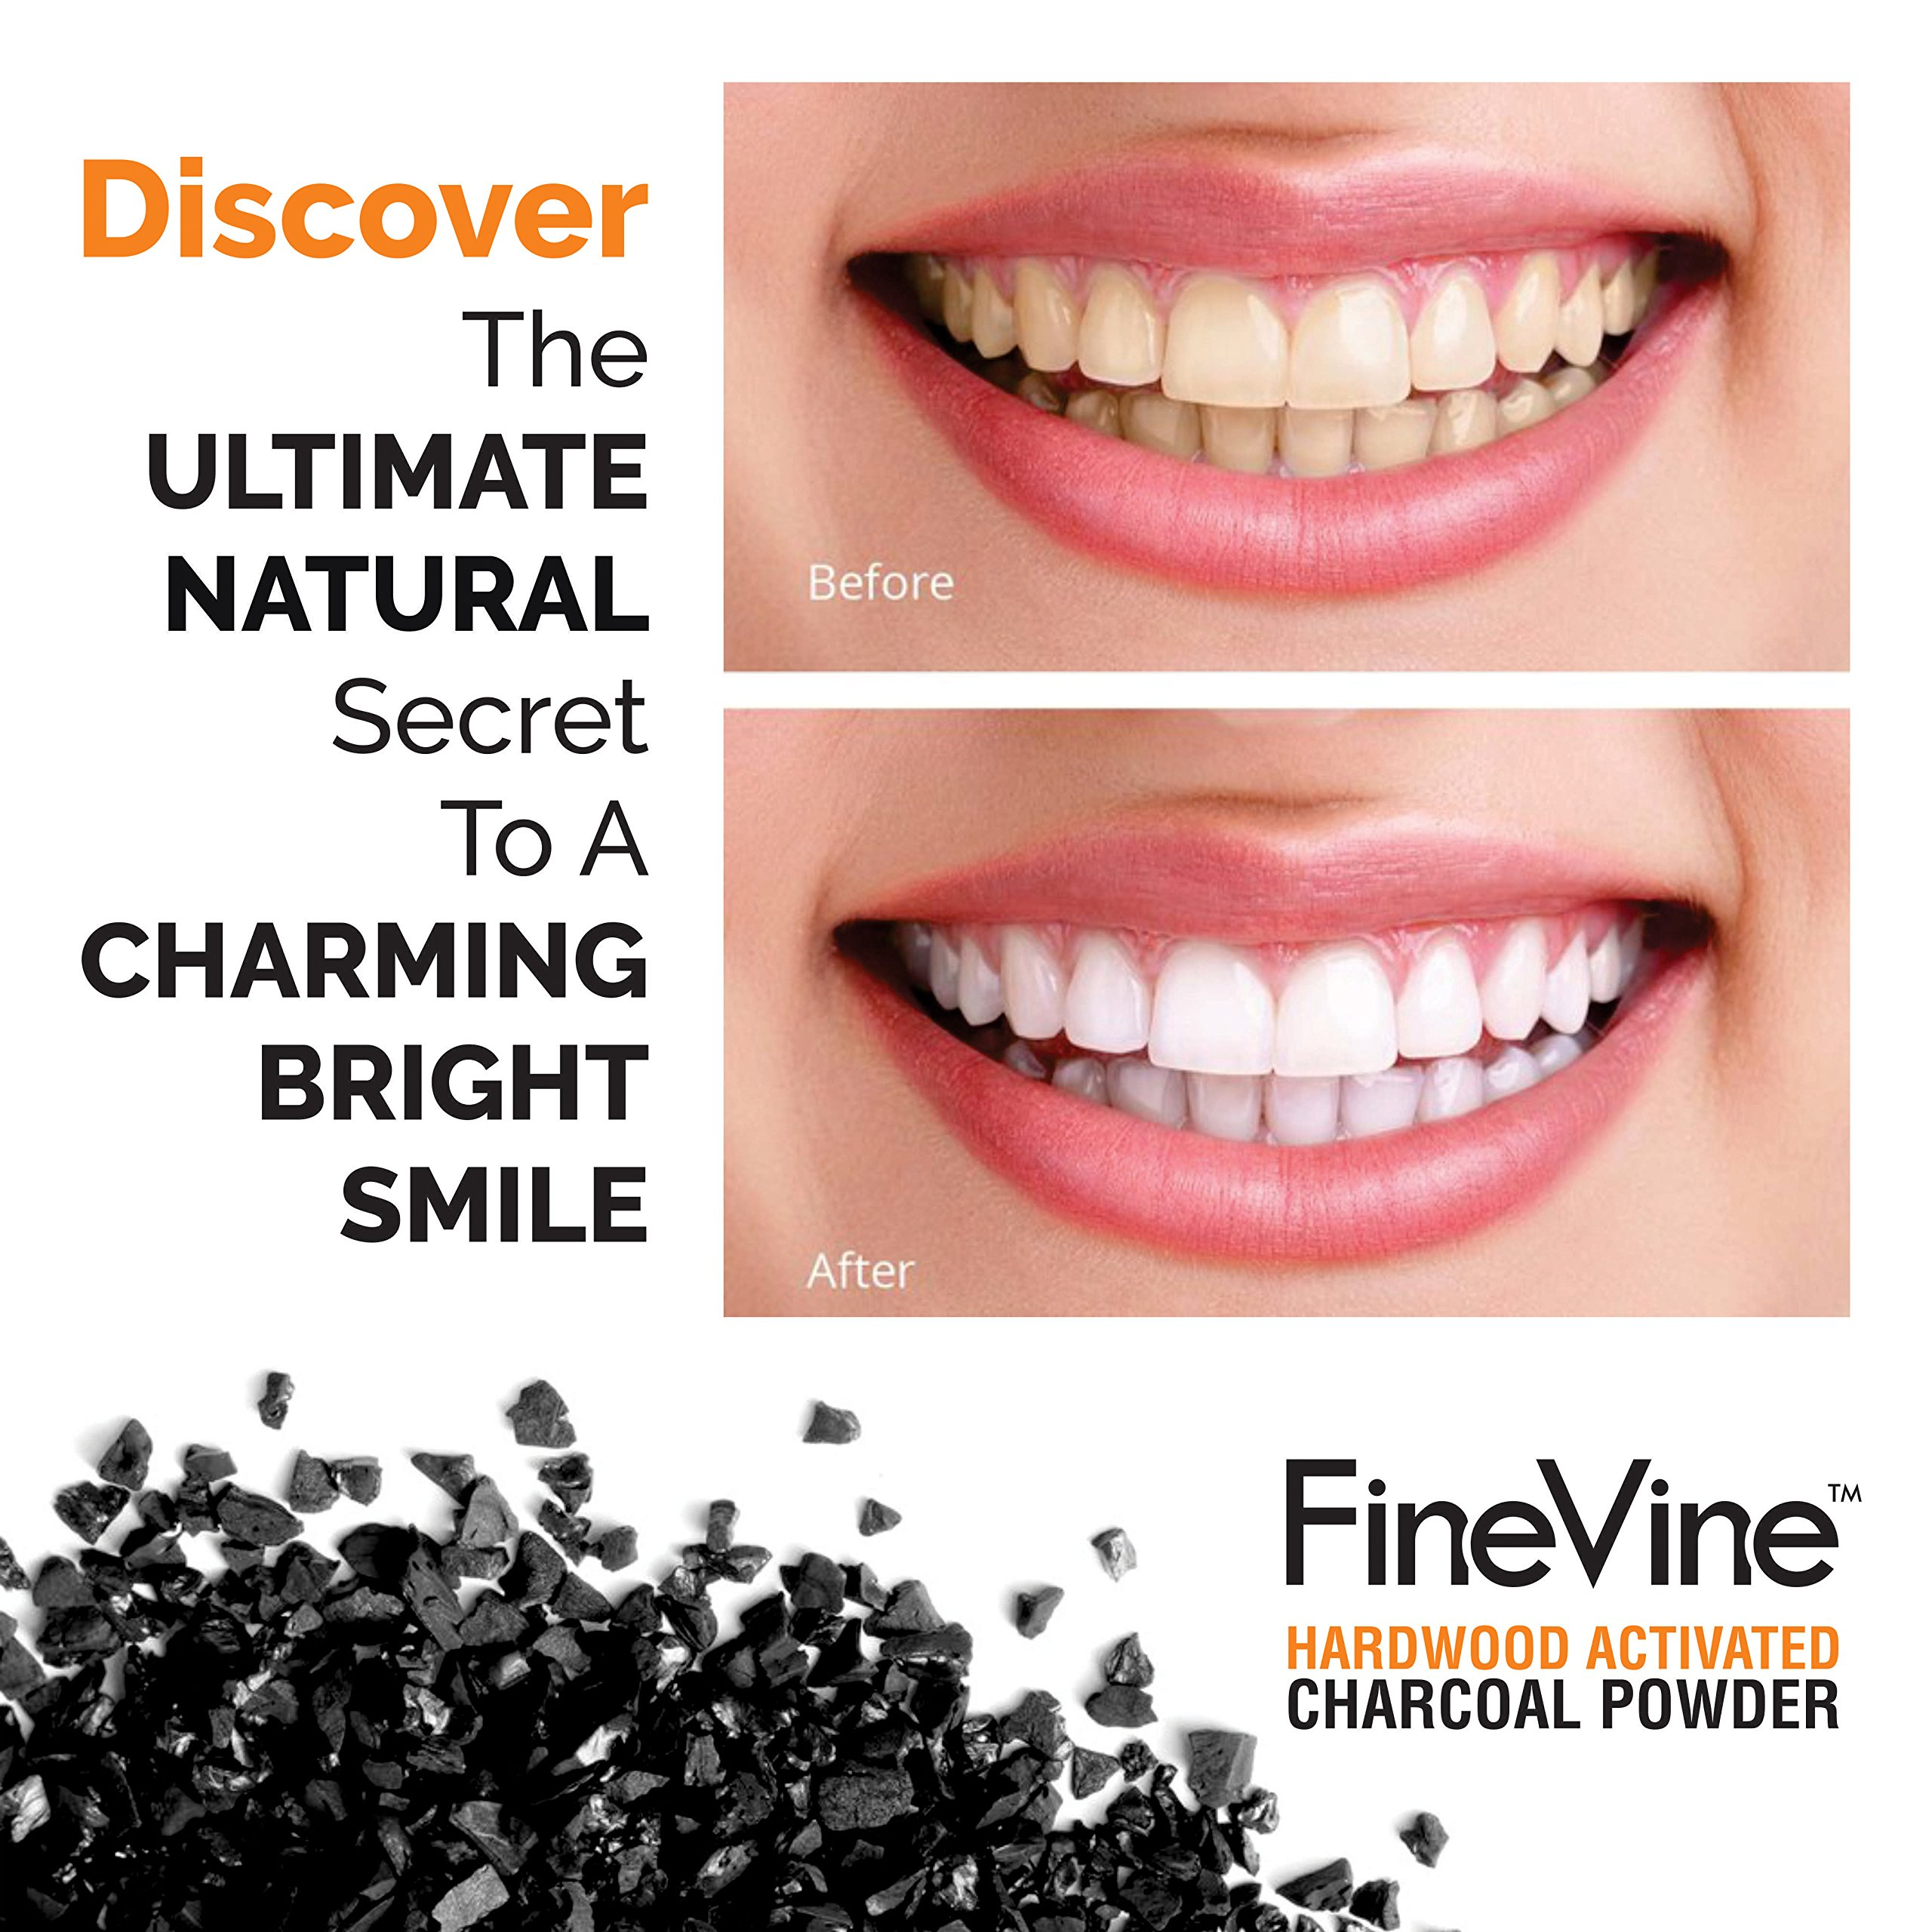 Activated Hardwood Charcoal Powder - Made in USA - Food Grade for Detox, Teeth whitening, Face Mask, Helps Digestion, Bug Bites, Treats Poisoning and Wounds. by FineVine (Image #4)